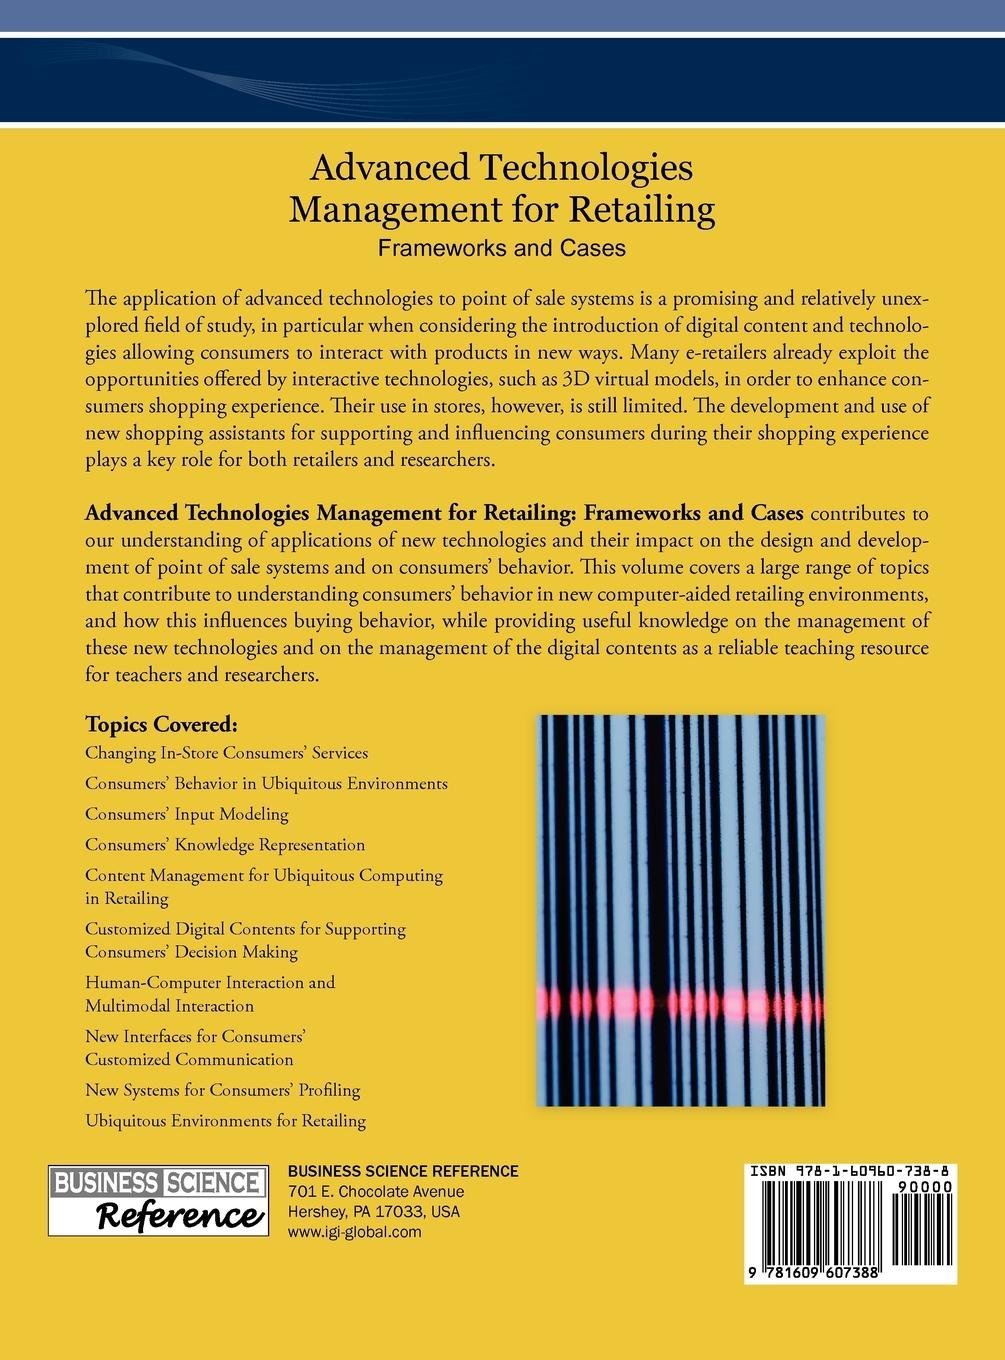 Advanced Technologies Management for Retailing: Frameworks and Cases:  Eleonora Pantano: 9781609607388: Books - Amazon.ca